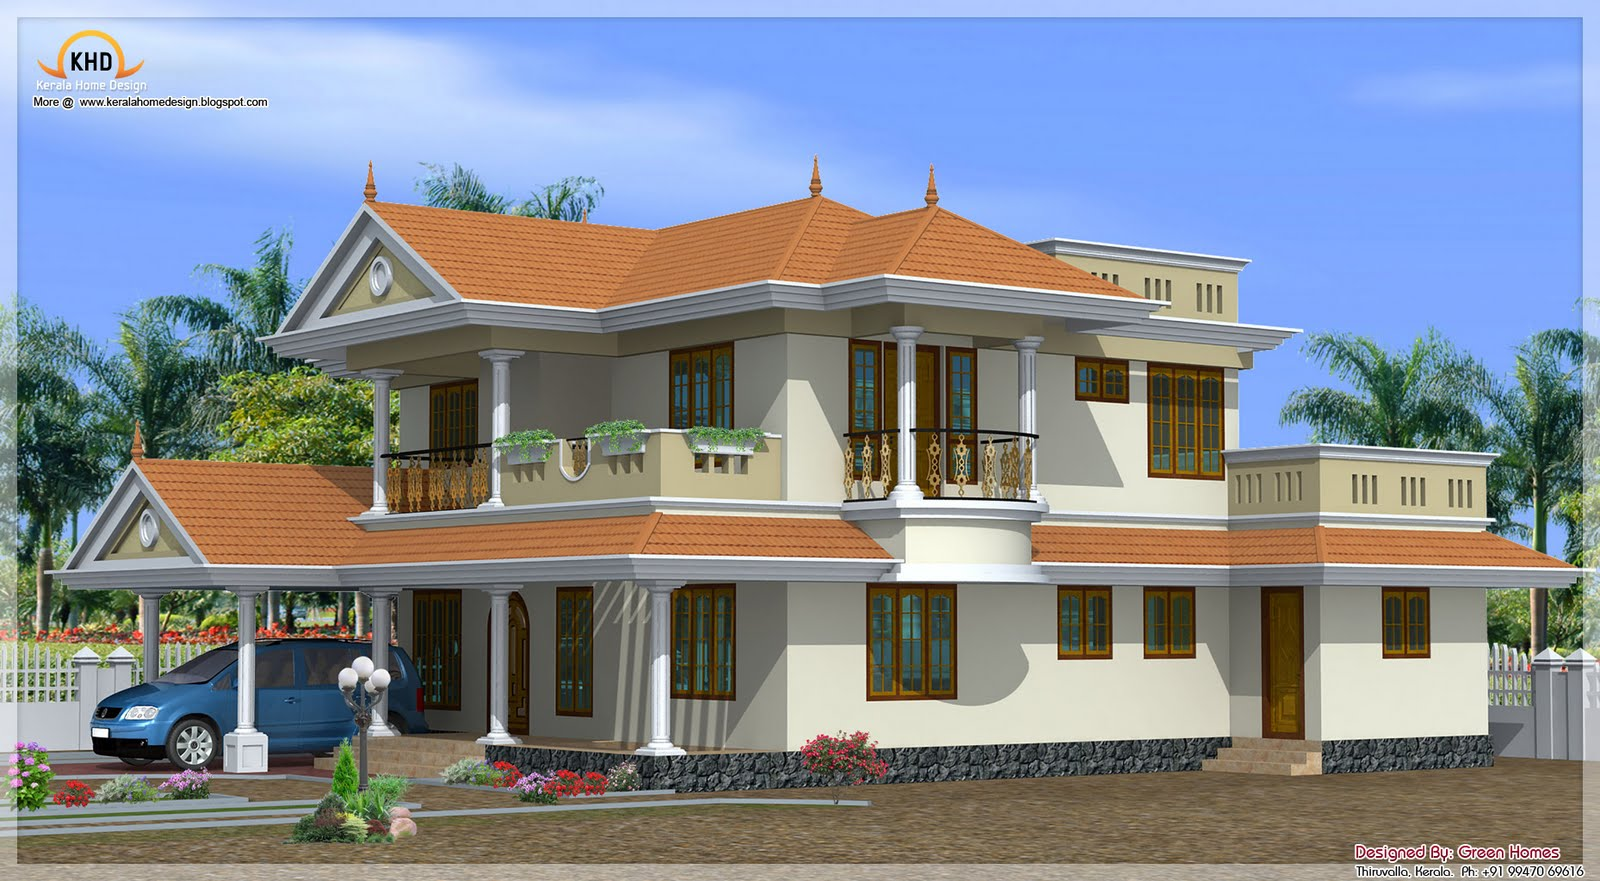 Indian Home Design: Indian Home Design